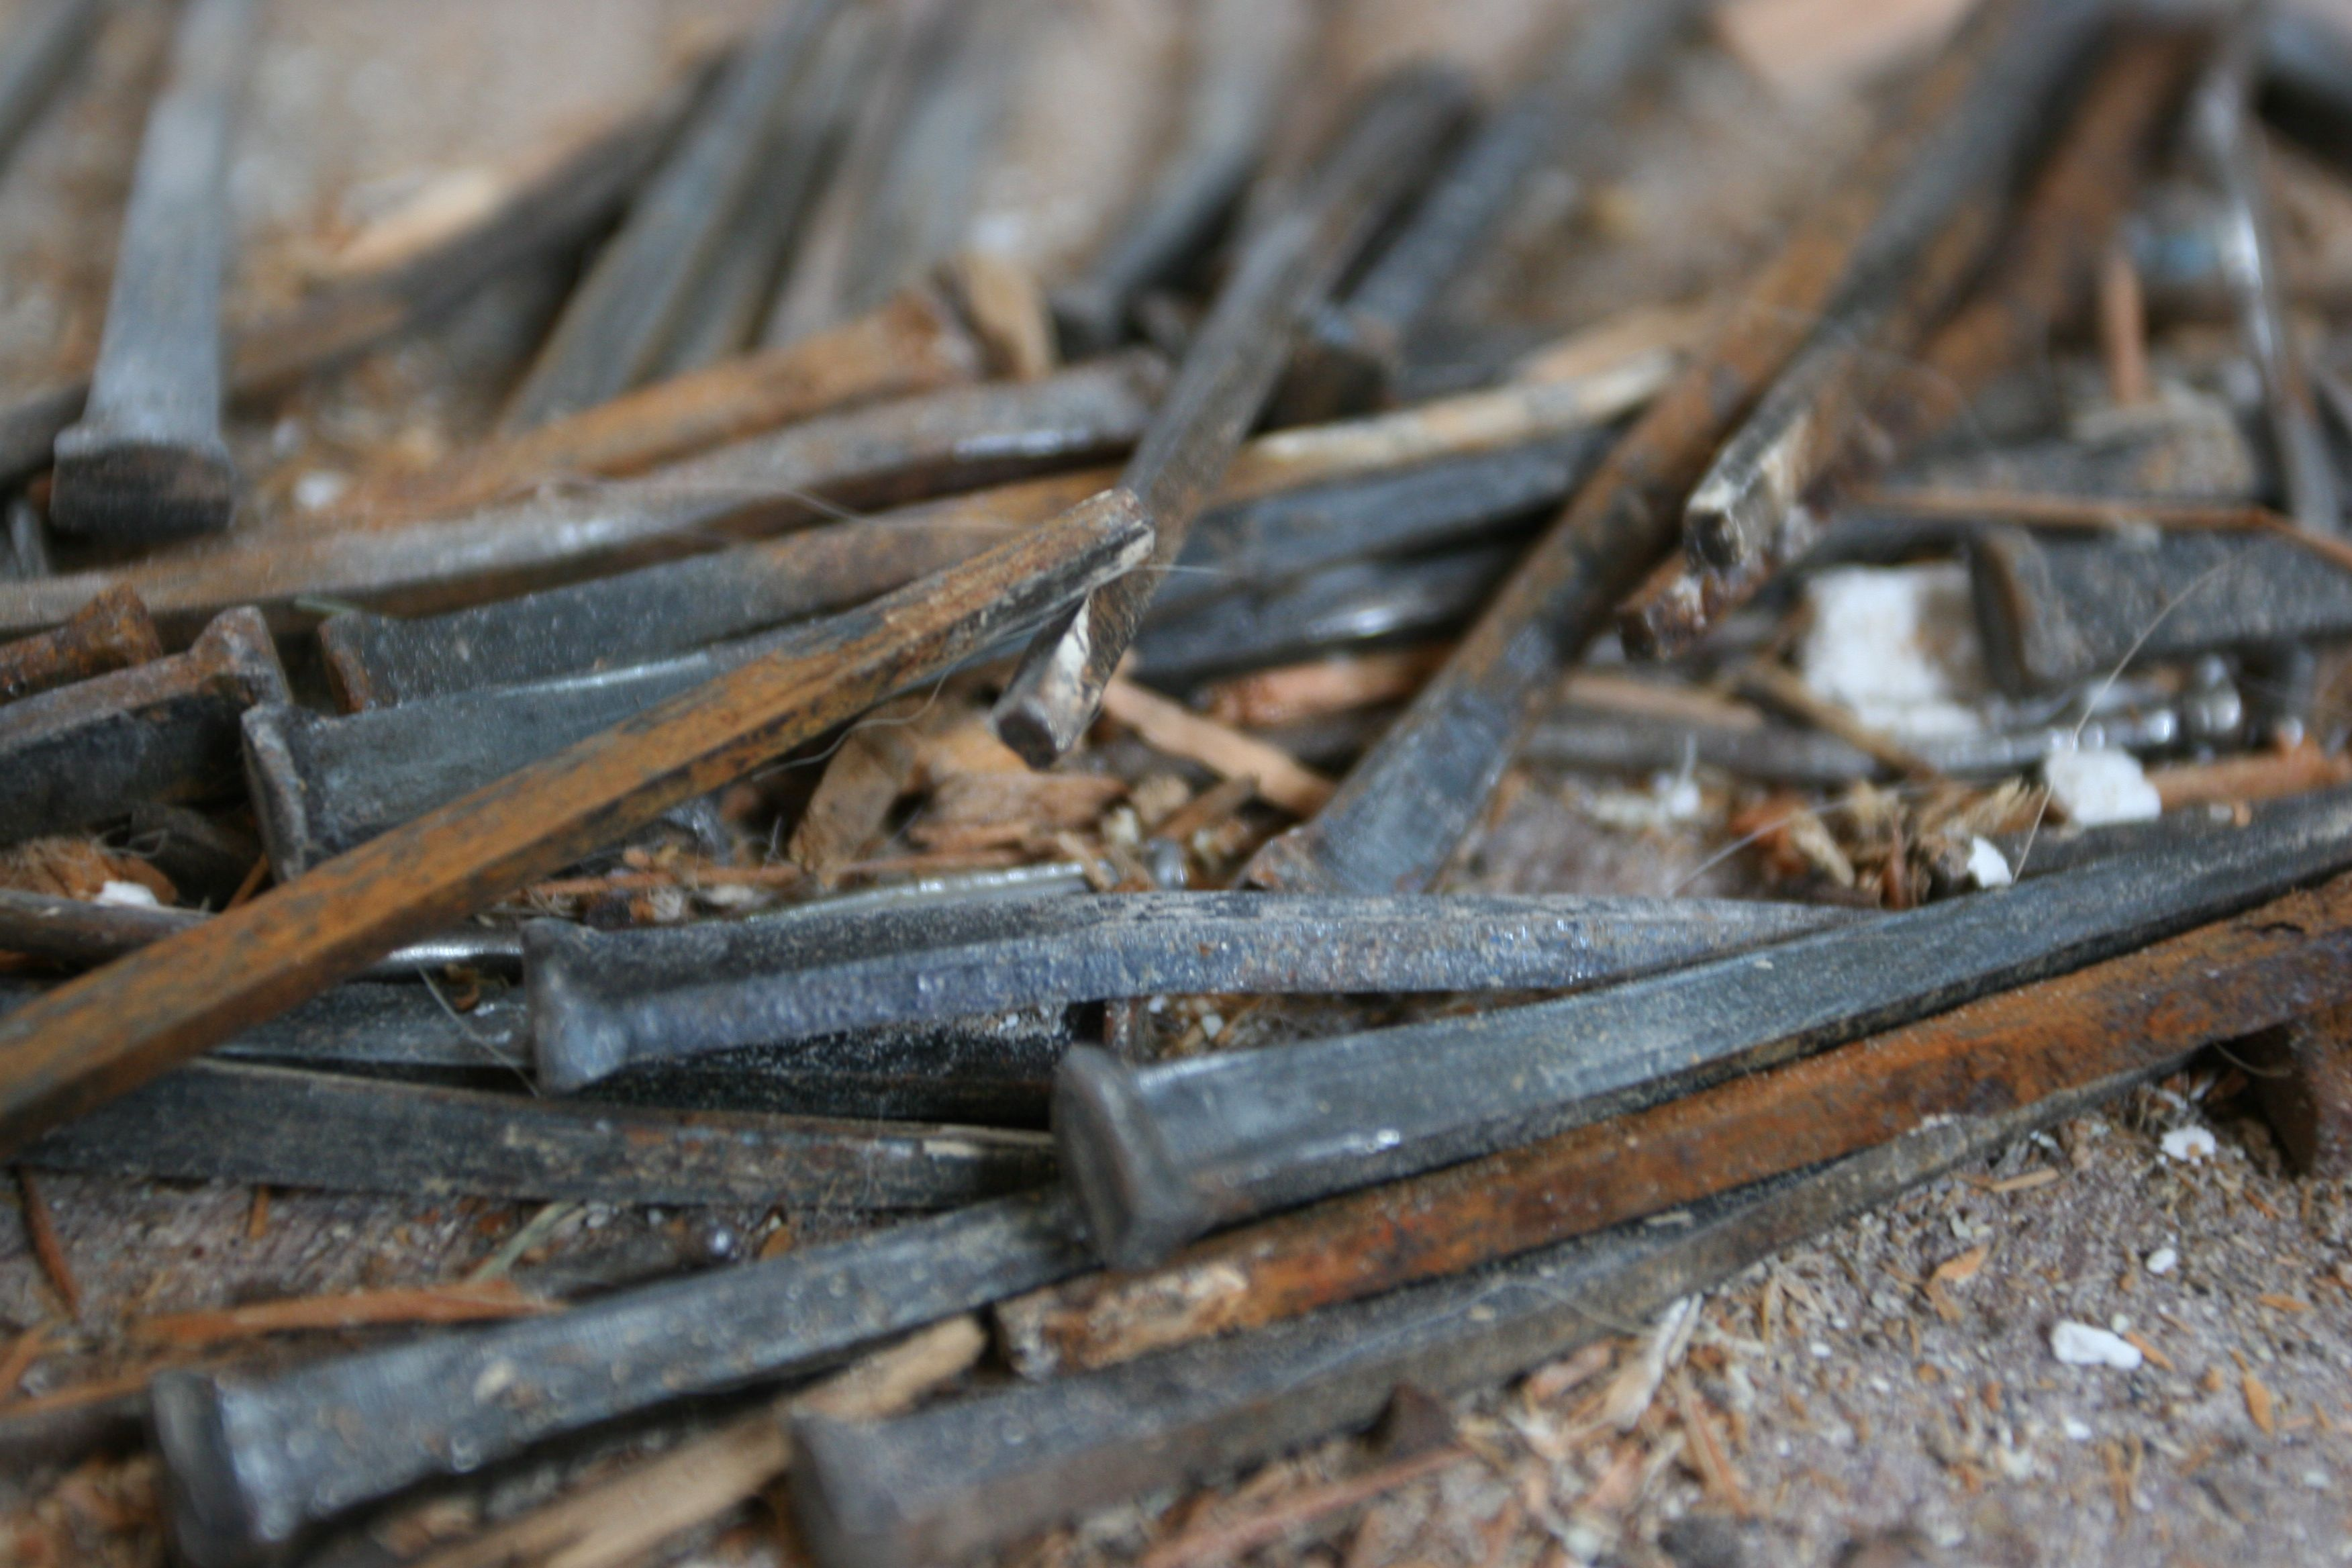 Piles of old hand-forged square nails were pulled out of the antique boards so we can re-use the wood upstairs.